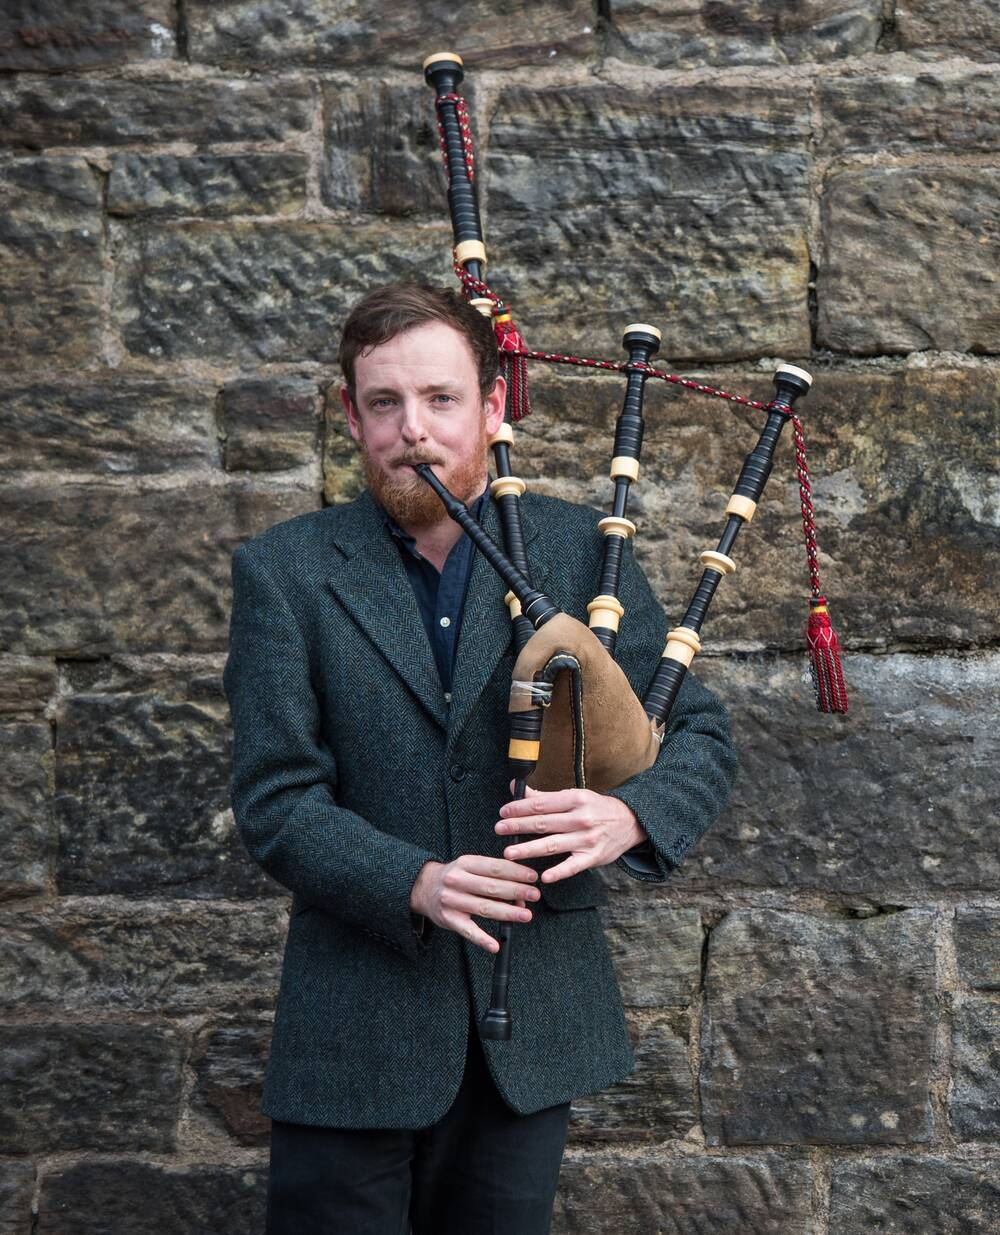 A man stands in front of a stone wall, playing the bagpipes.